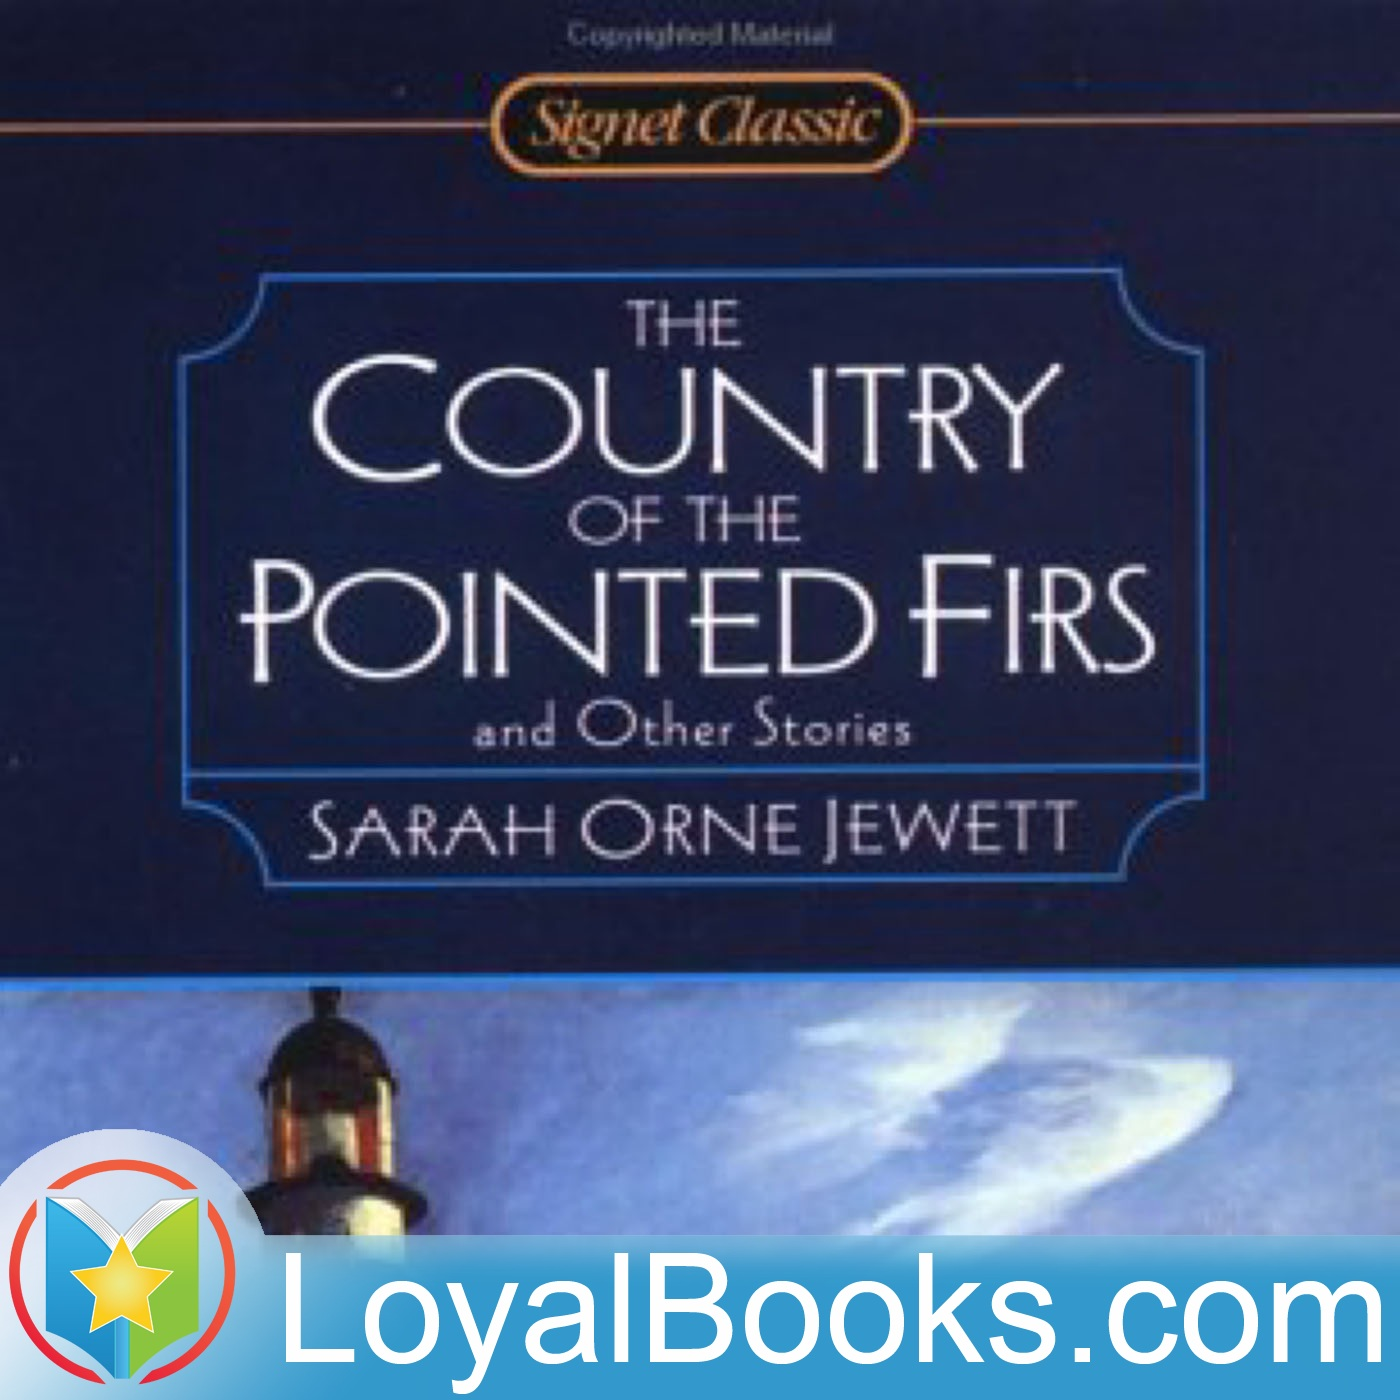 <![CDATA[Country of the Pointed Firs by Sarah Orne Jewett]]>